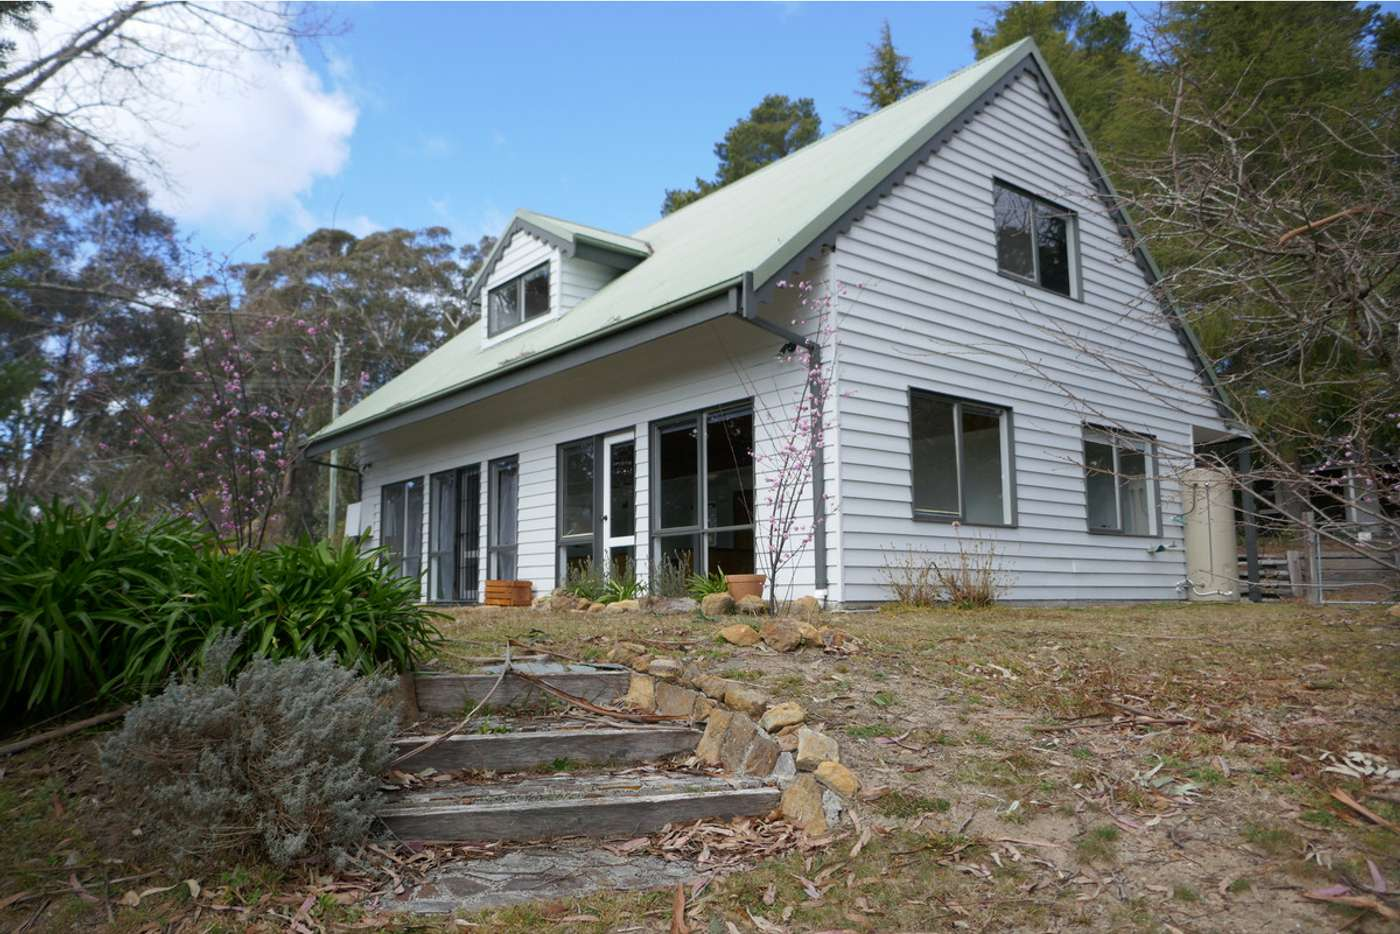 Main view of Homely house listing, 18 Closeburn Drive, Mount Victoria NSW 2786